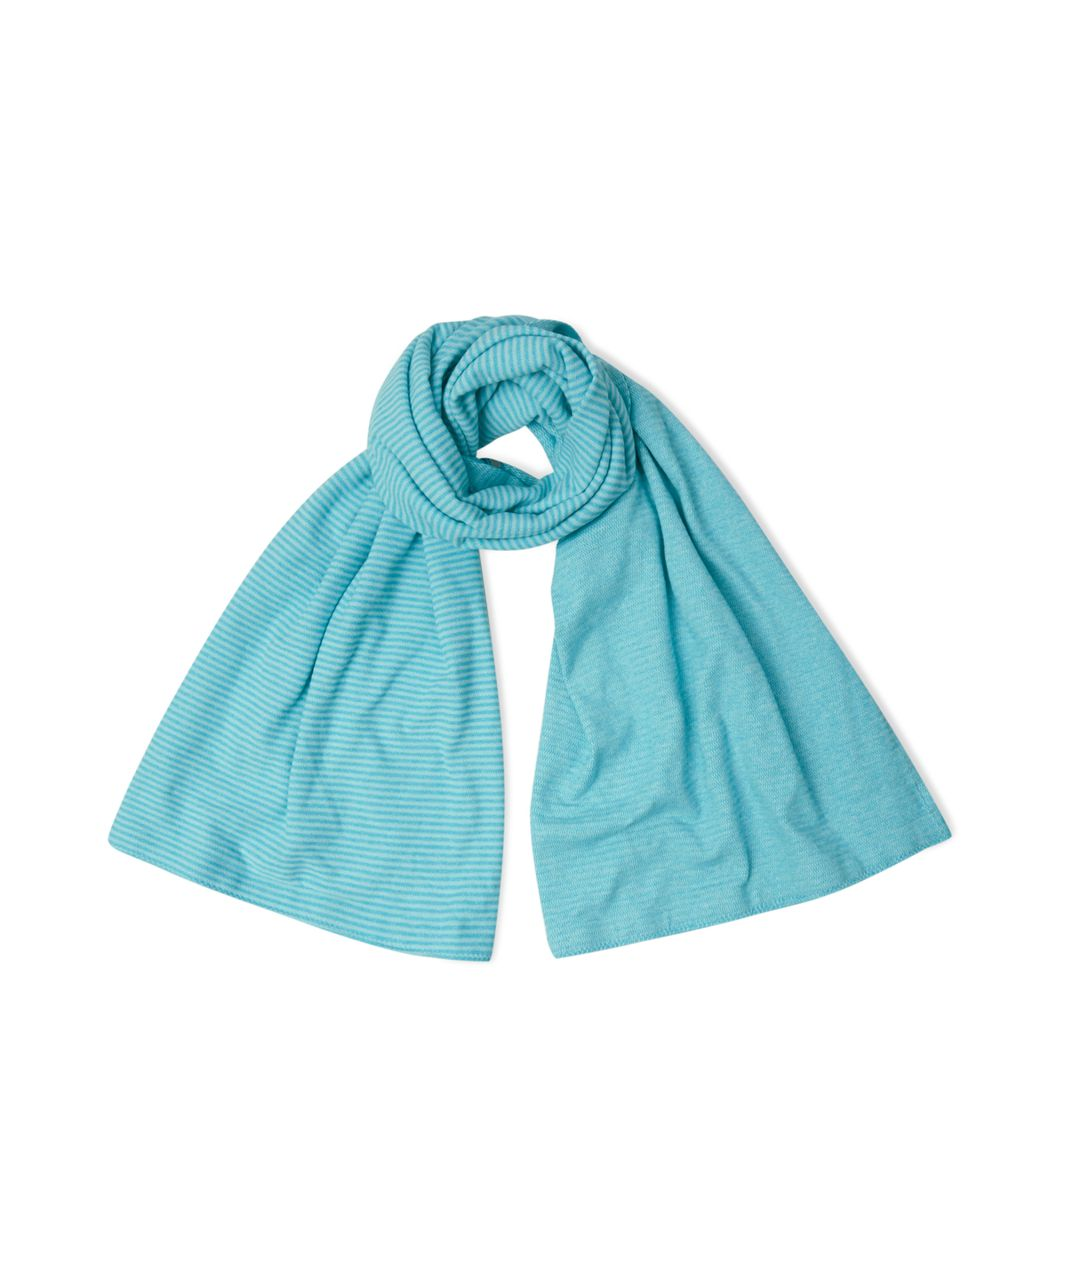 Lululemon Vinyasa Scarf - Mini Check Pique Aquamarine Heathered Peacock Blue